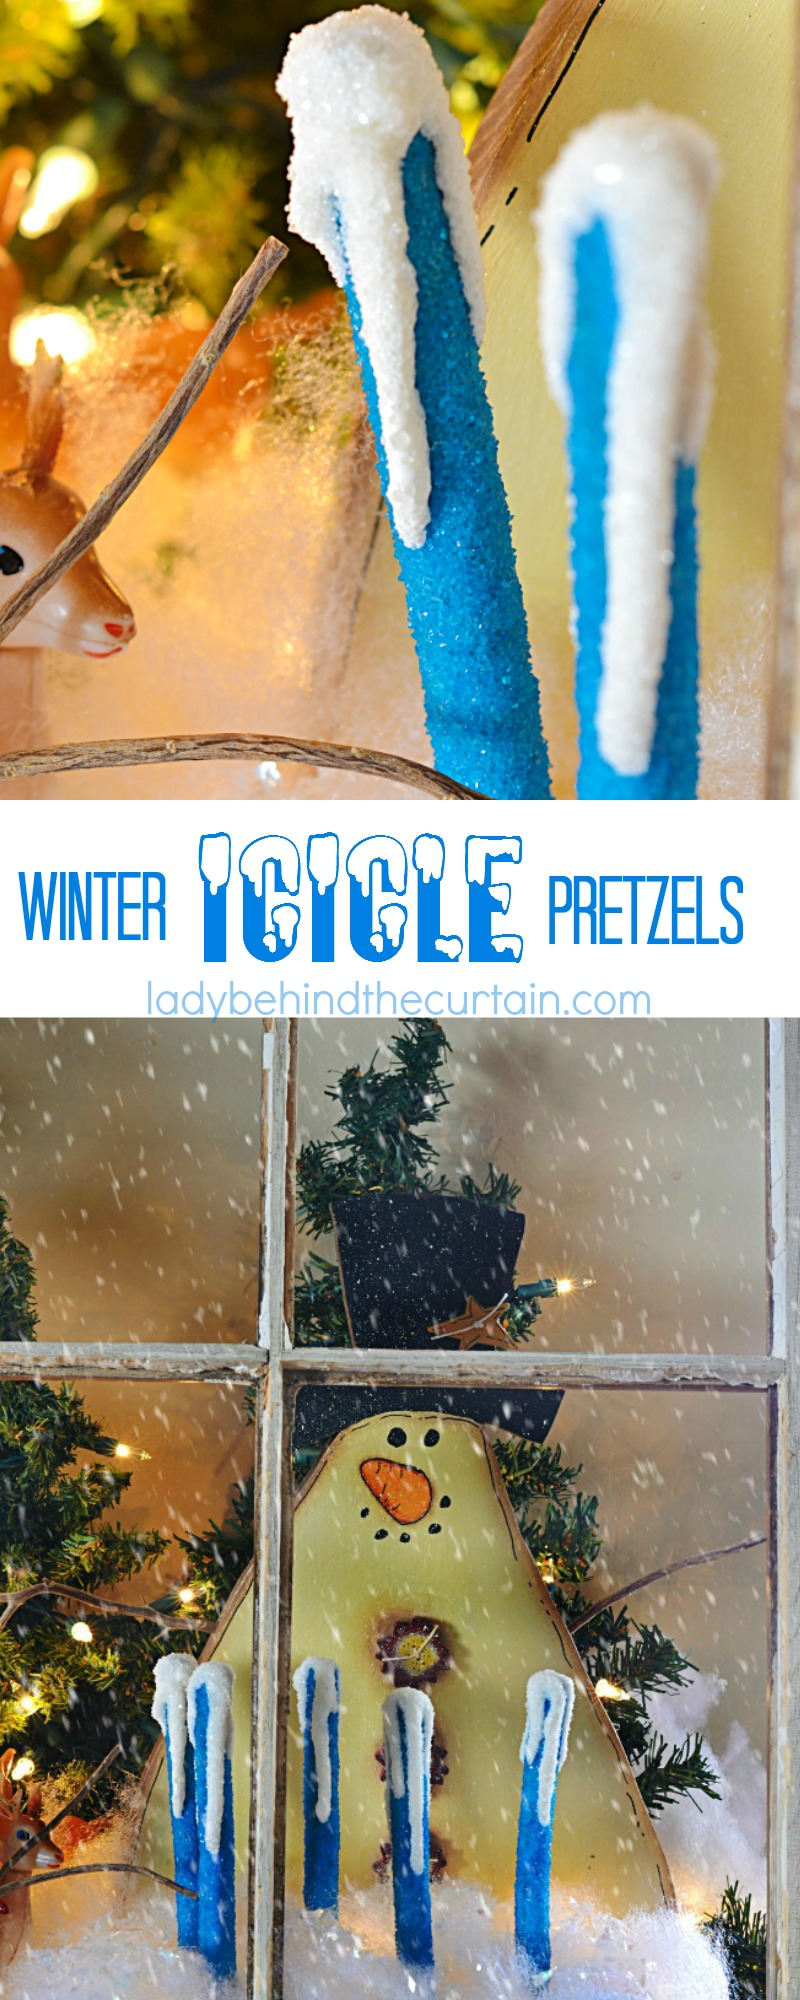 These Winter Icicle Pretzels would be awesome at a Frozen themed party. Display on your party dessert table or wrap up and hand out as party favors.